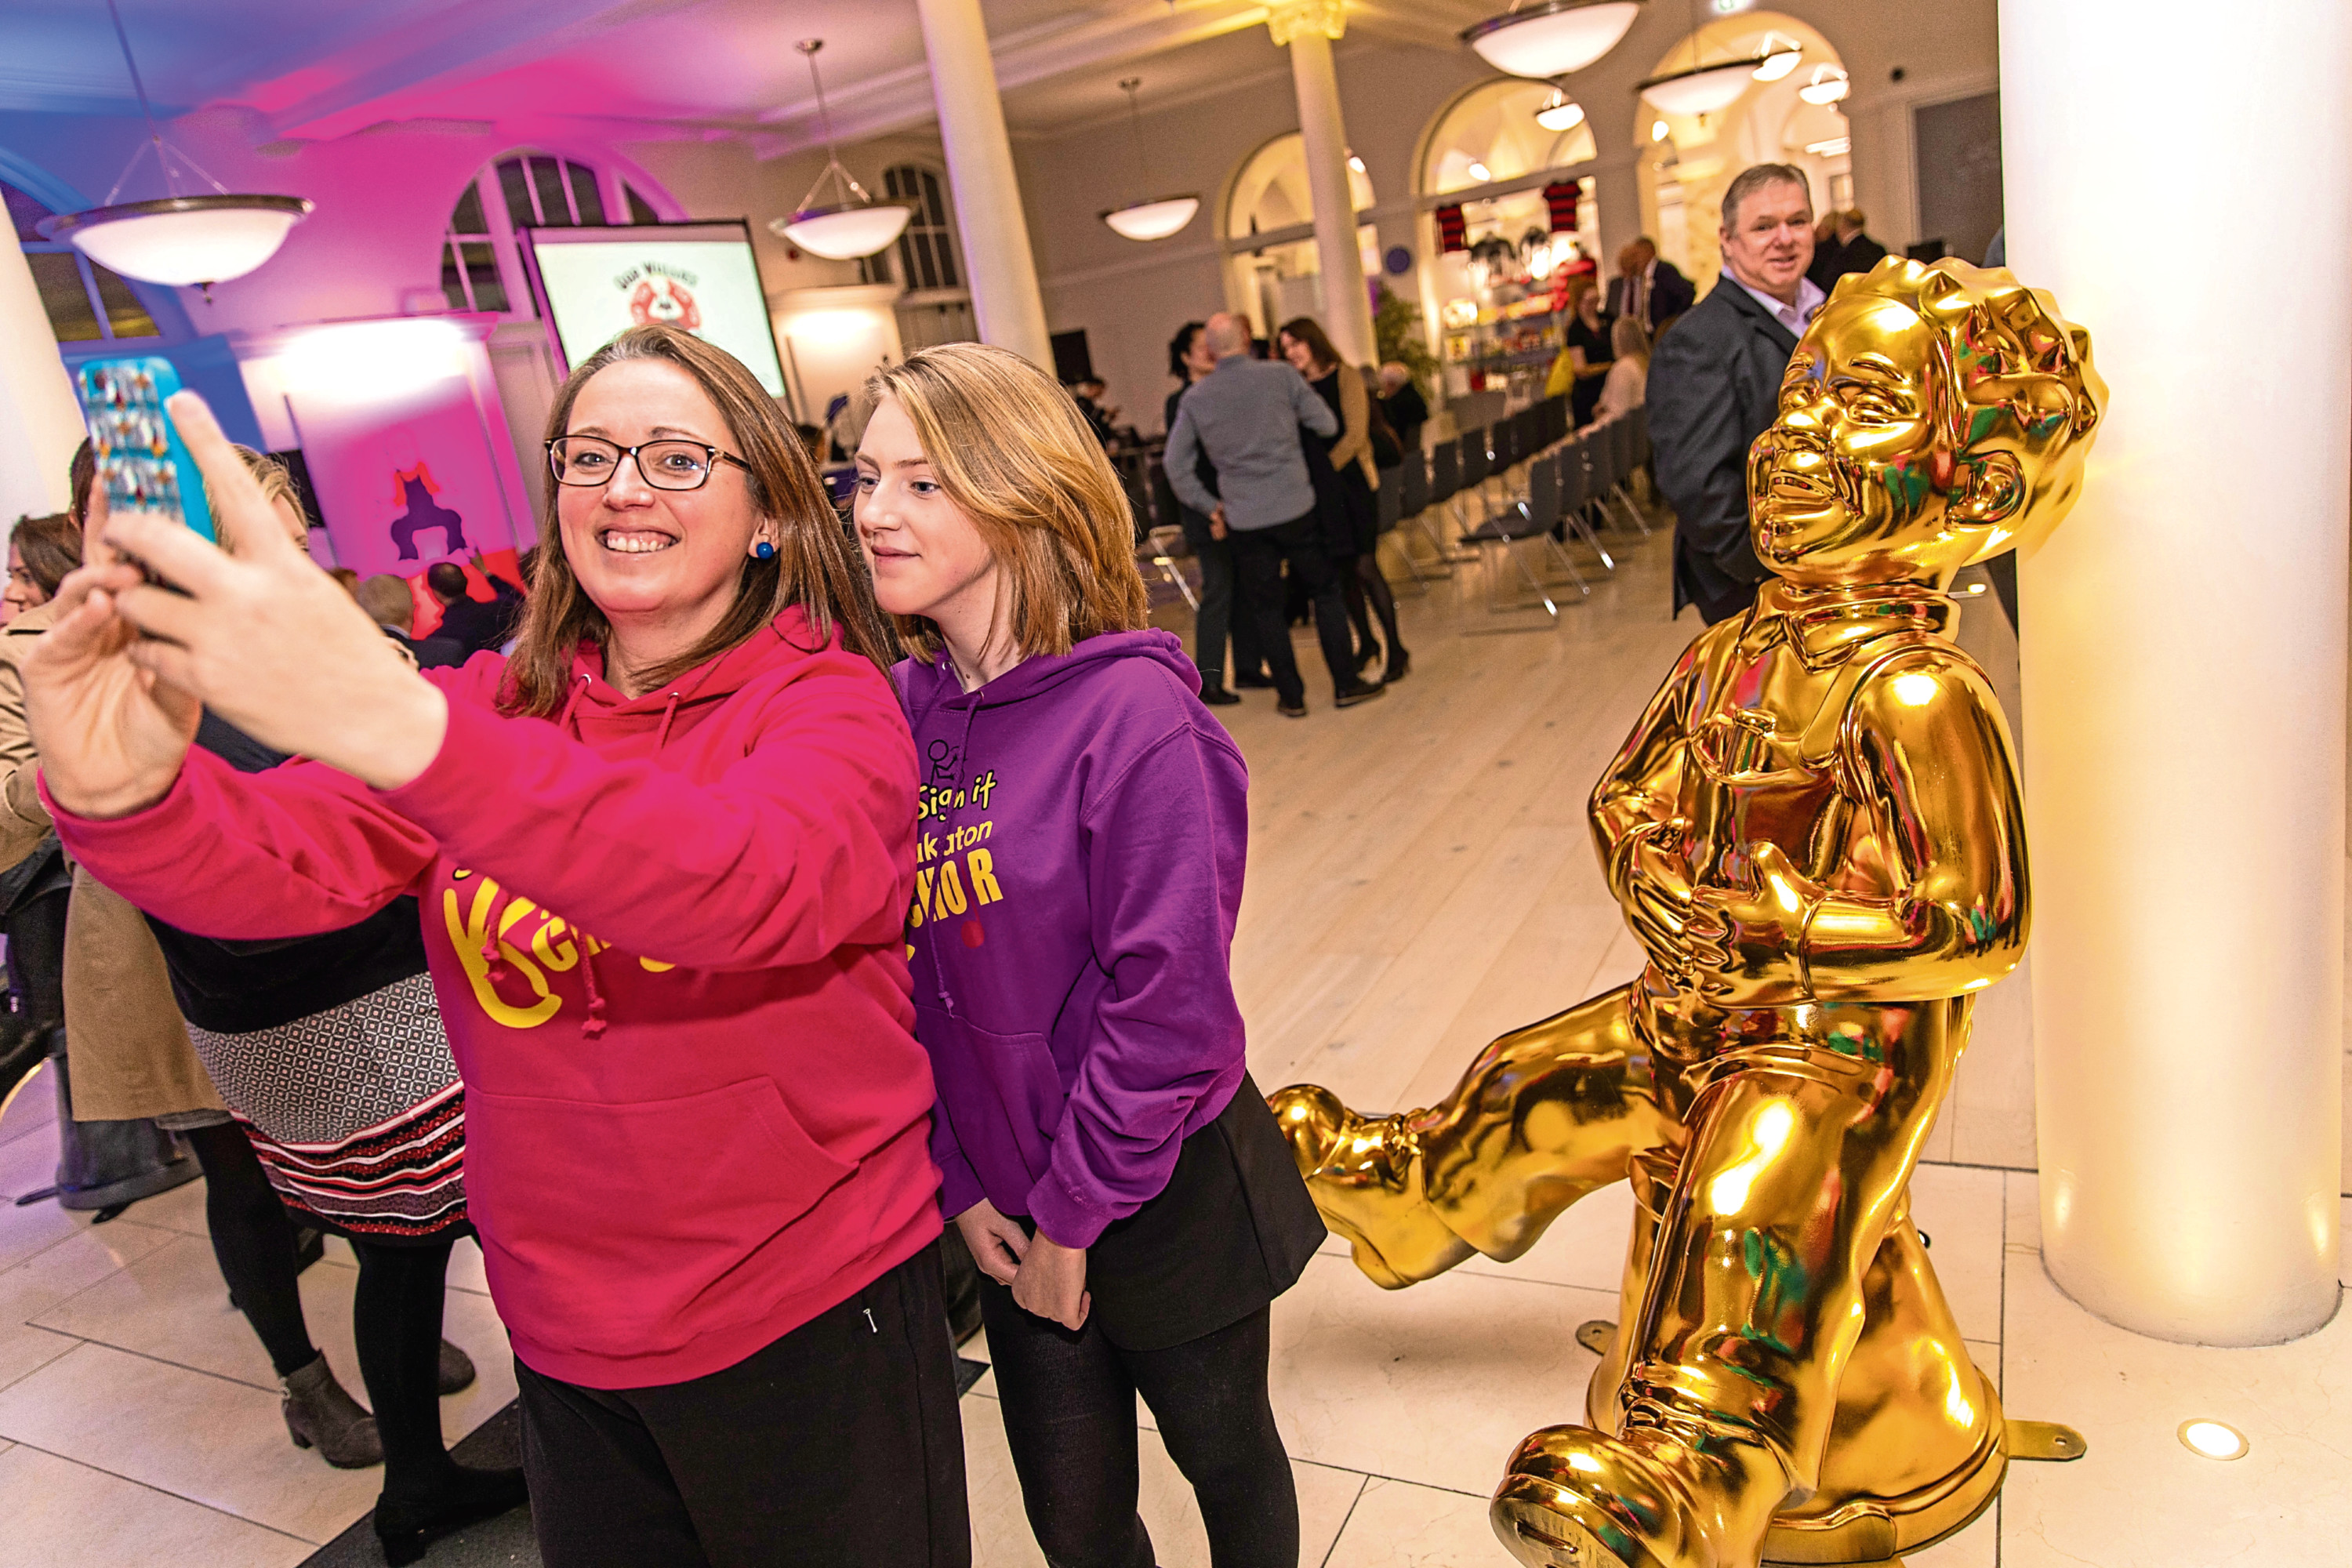 Nicola and Abbie Richardson grab a selfie with Oor Wullie at the launch